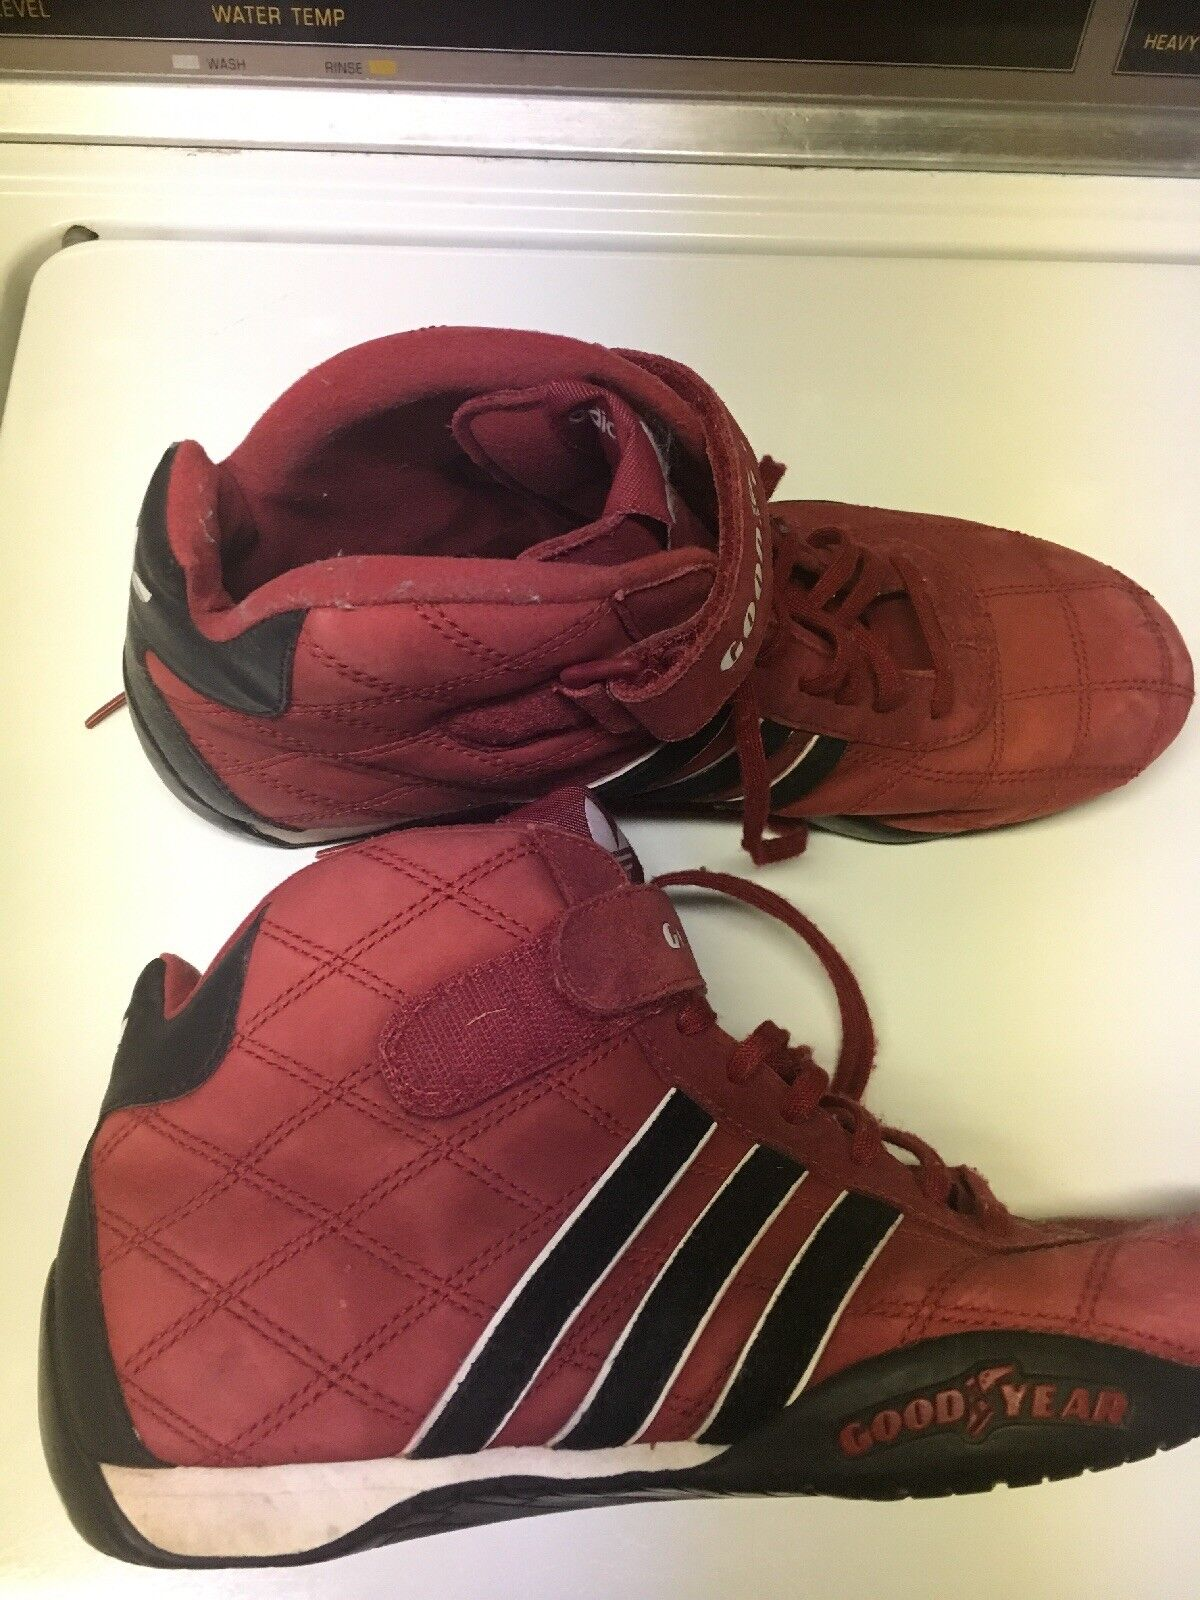 ADIDAS GOODYEAR Red  Racing Shoes